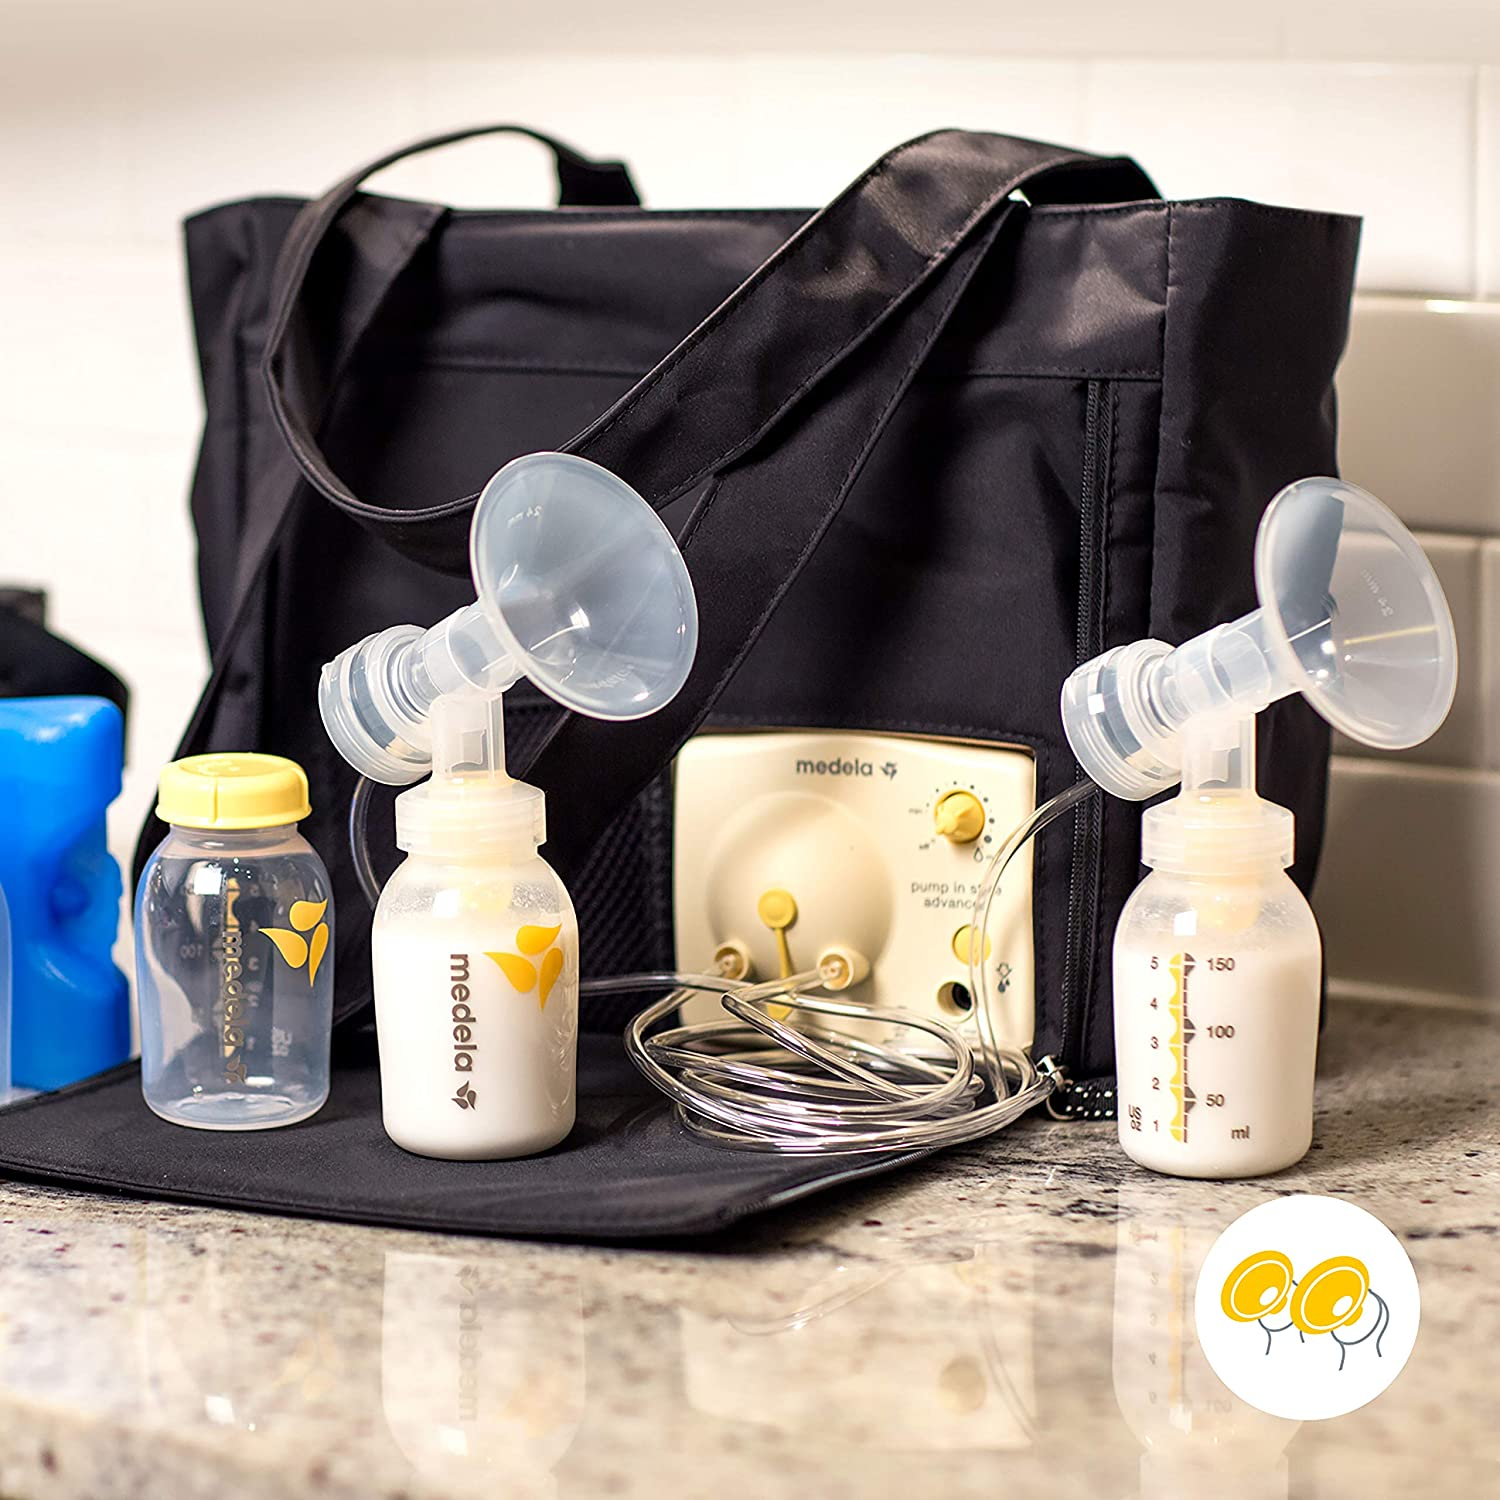 Amazon Com Medela Pump In Style Advanced Breast Pump With